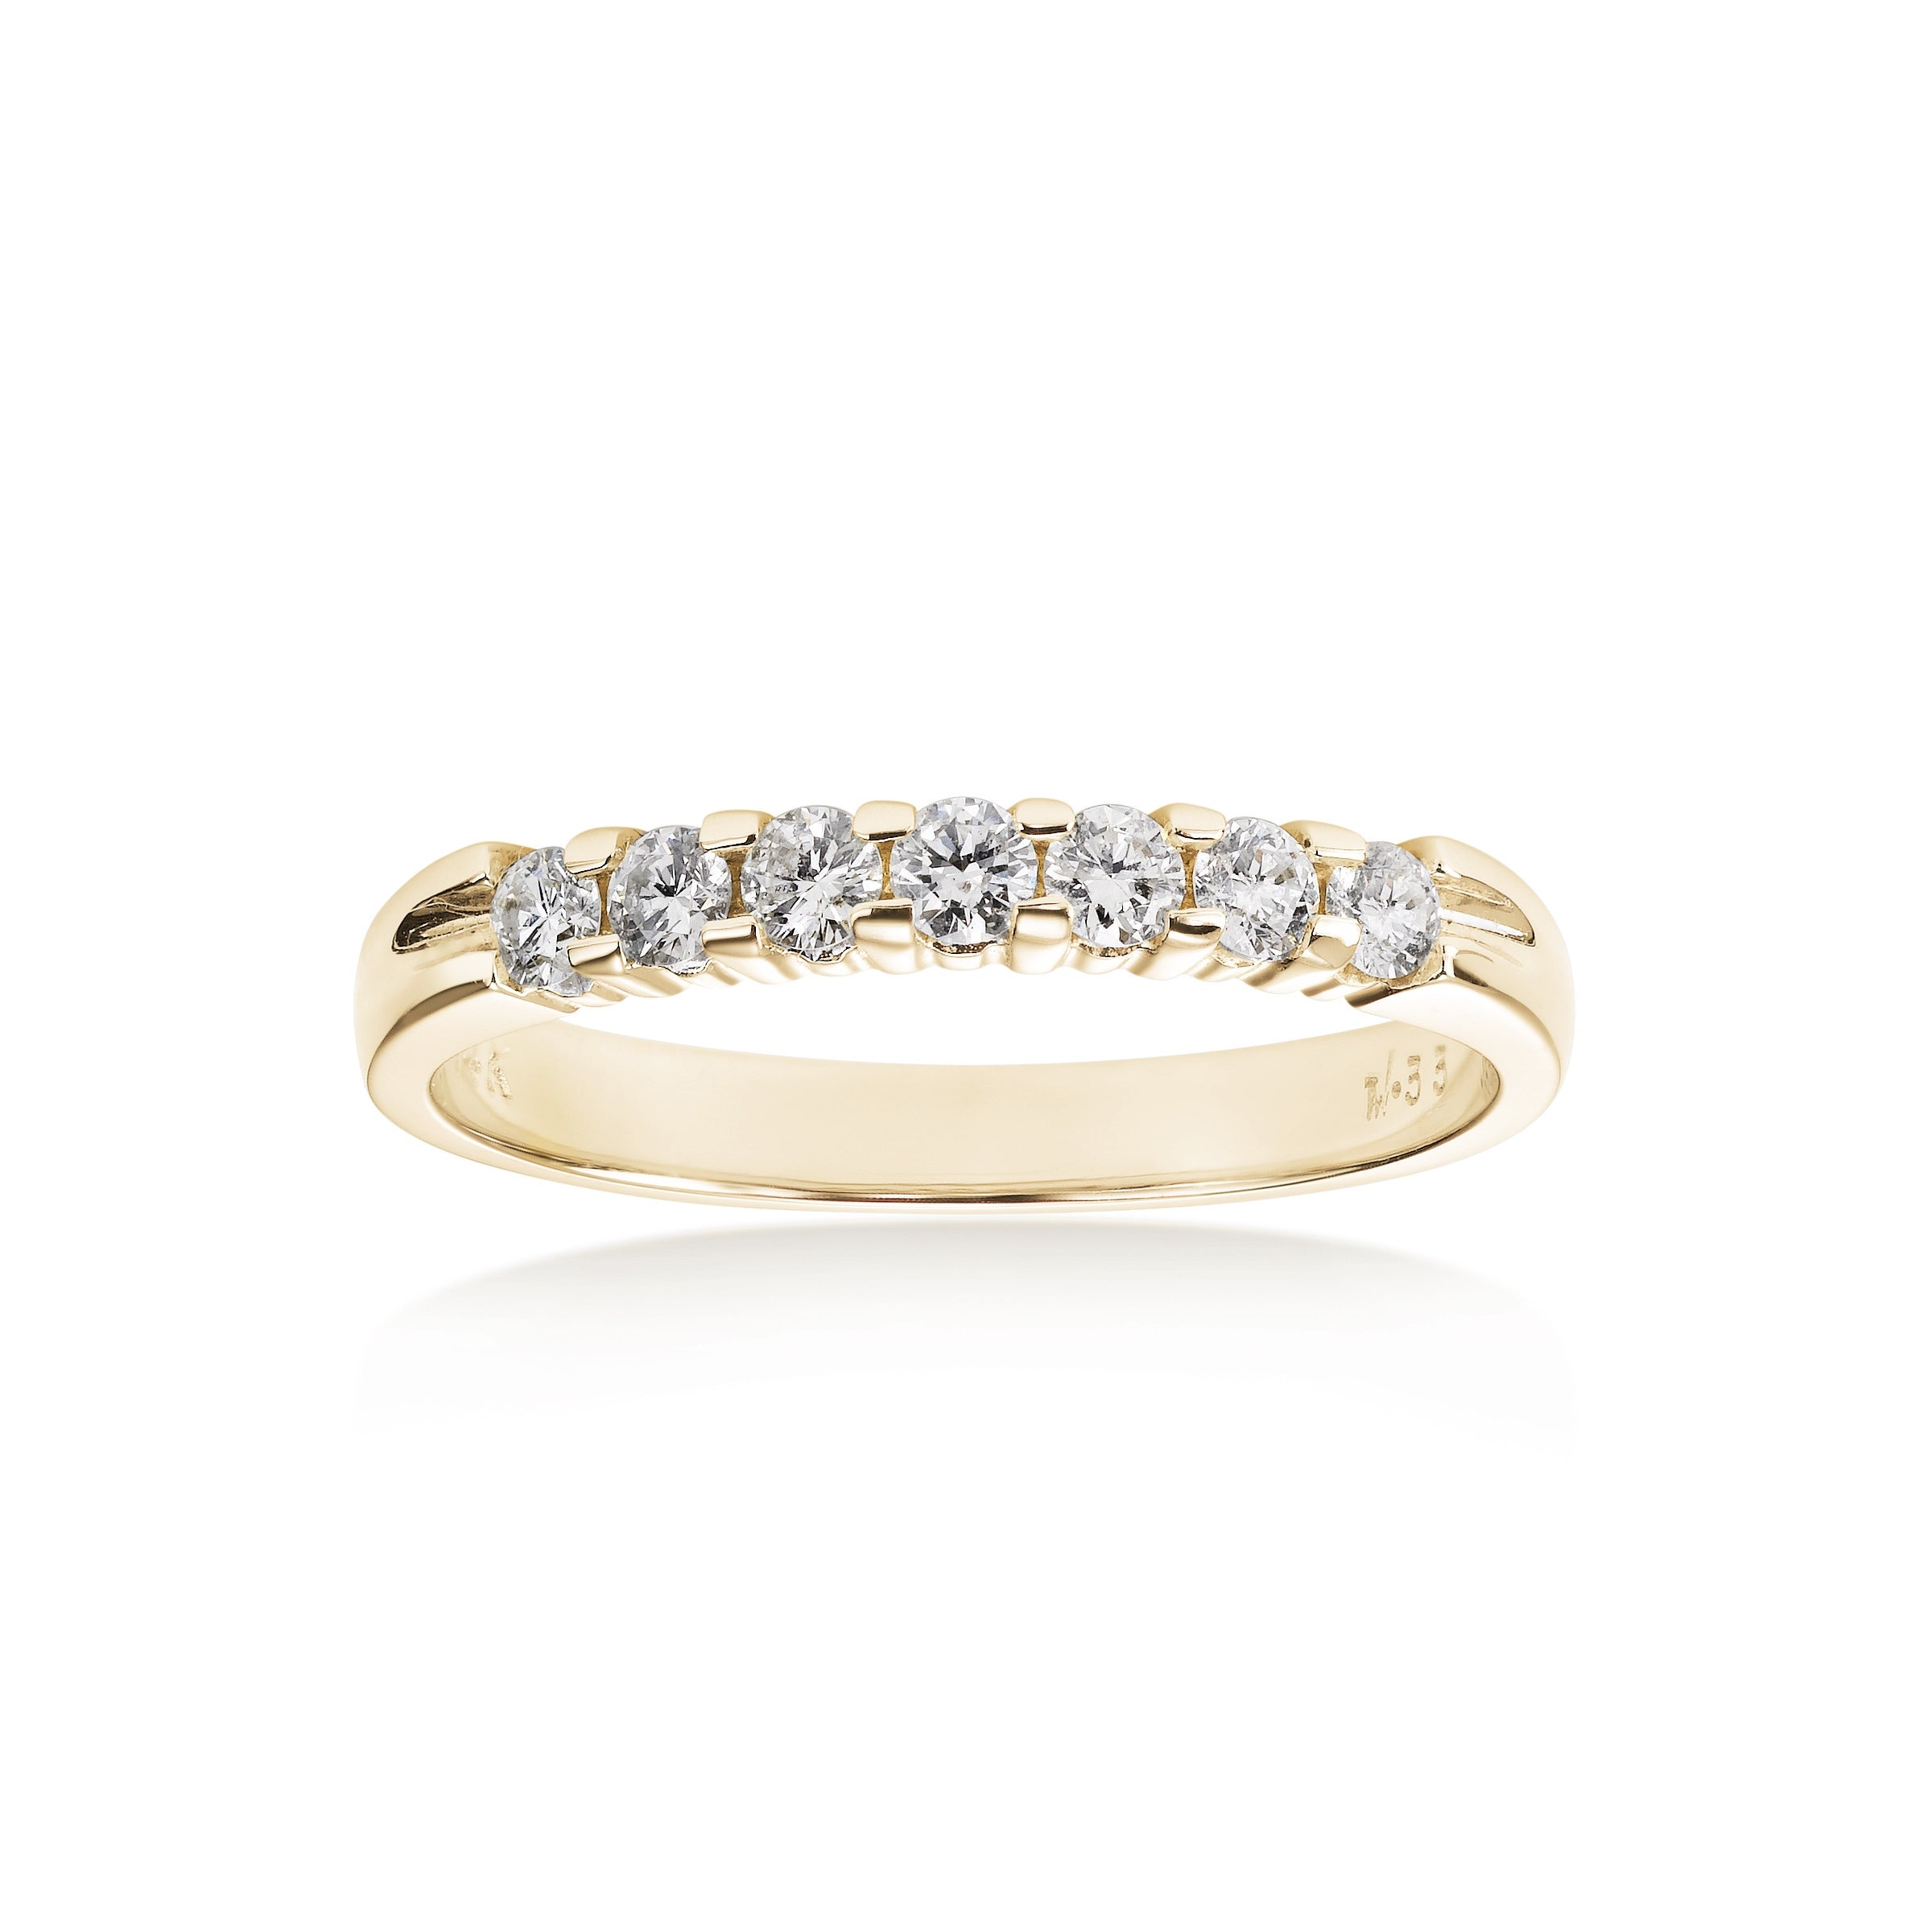 Seven Stone Shared Prong Diamond Wedding Band, .75 Carat, 14K Yellow Gold